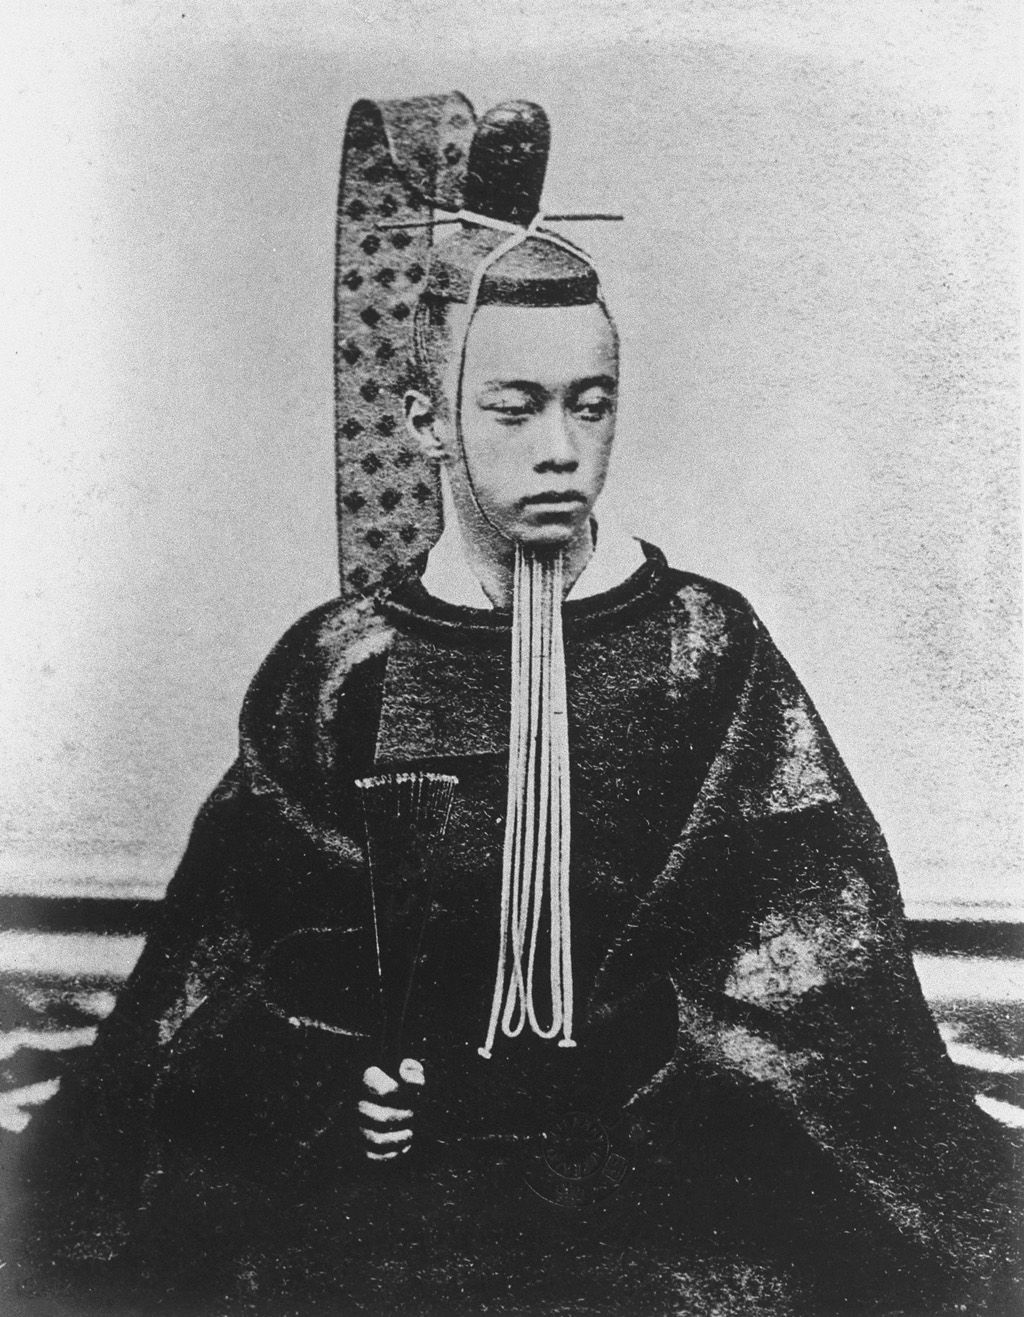 a history of the tokugawa shogunate of japan A silver seal used for diplomatic documents by the tokugawa shogunate late in the edo period (1603-1868) has been found, the tokugawa memorial foundation said monday the silver seal, or ginin .